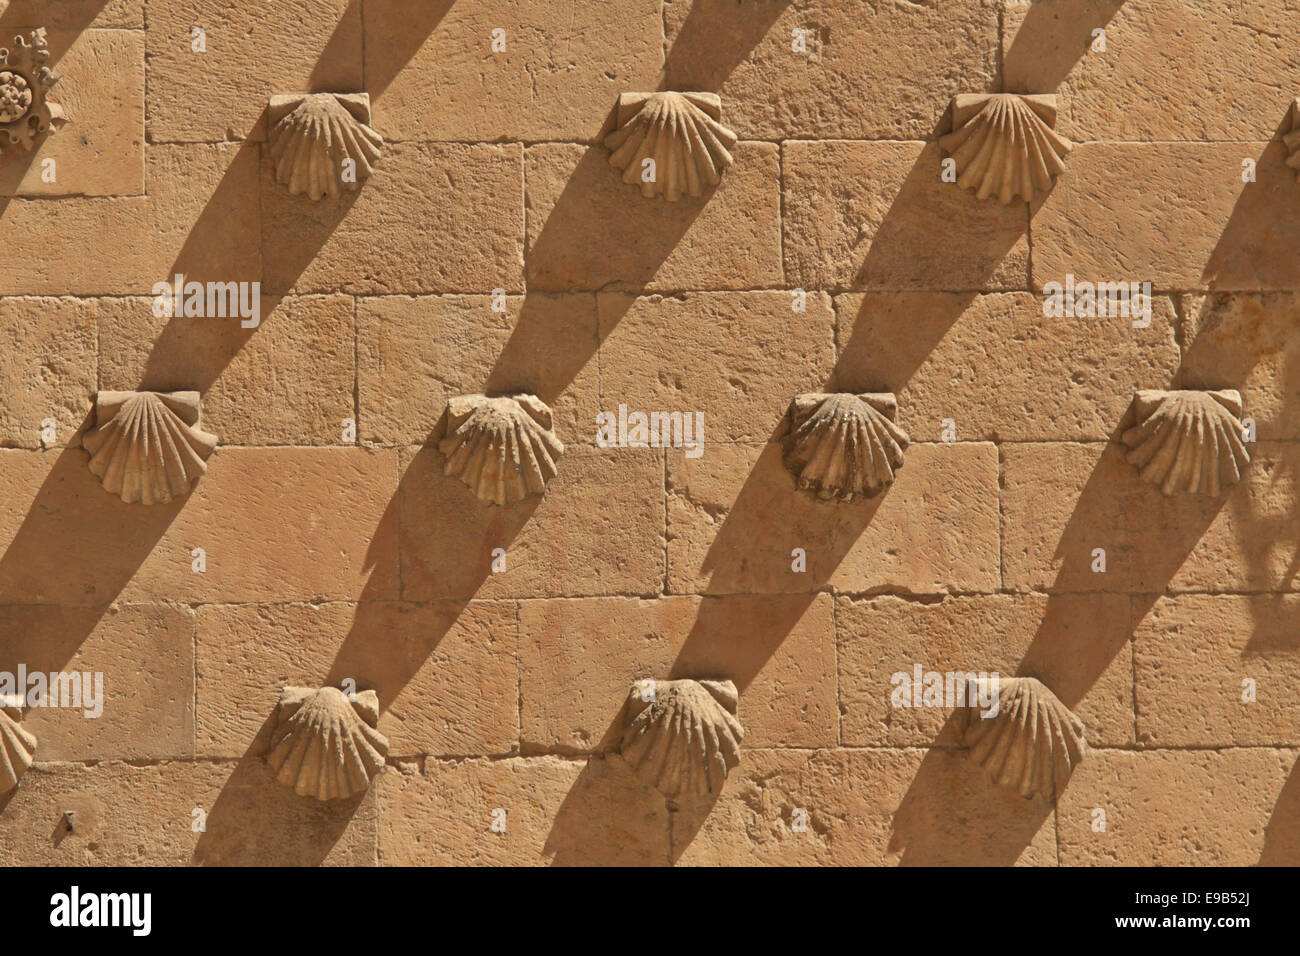 Detailed view of the shells on the façade of Casa de las Conchas, Salamanca, Castilla y León, Spain. - Stock Image